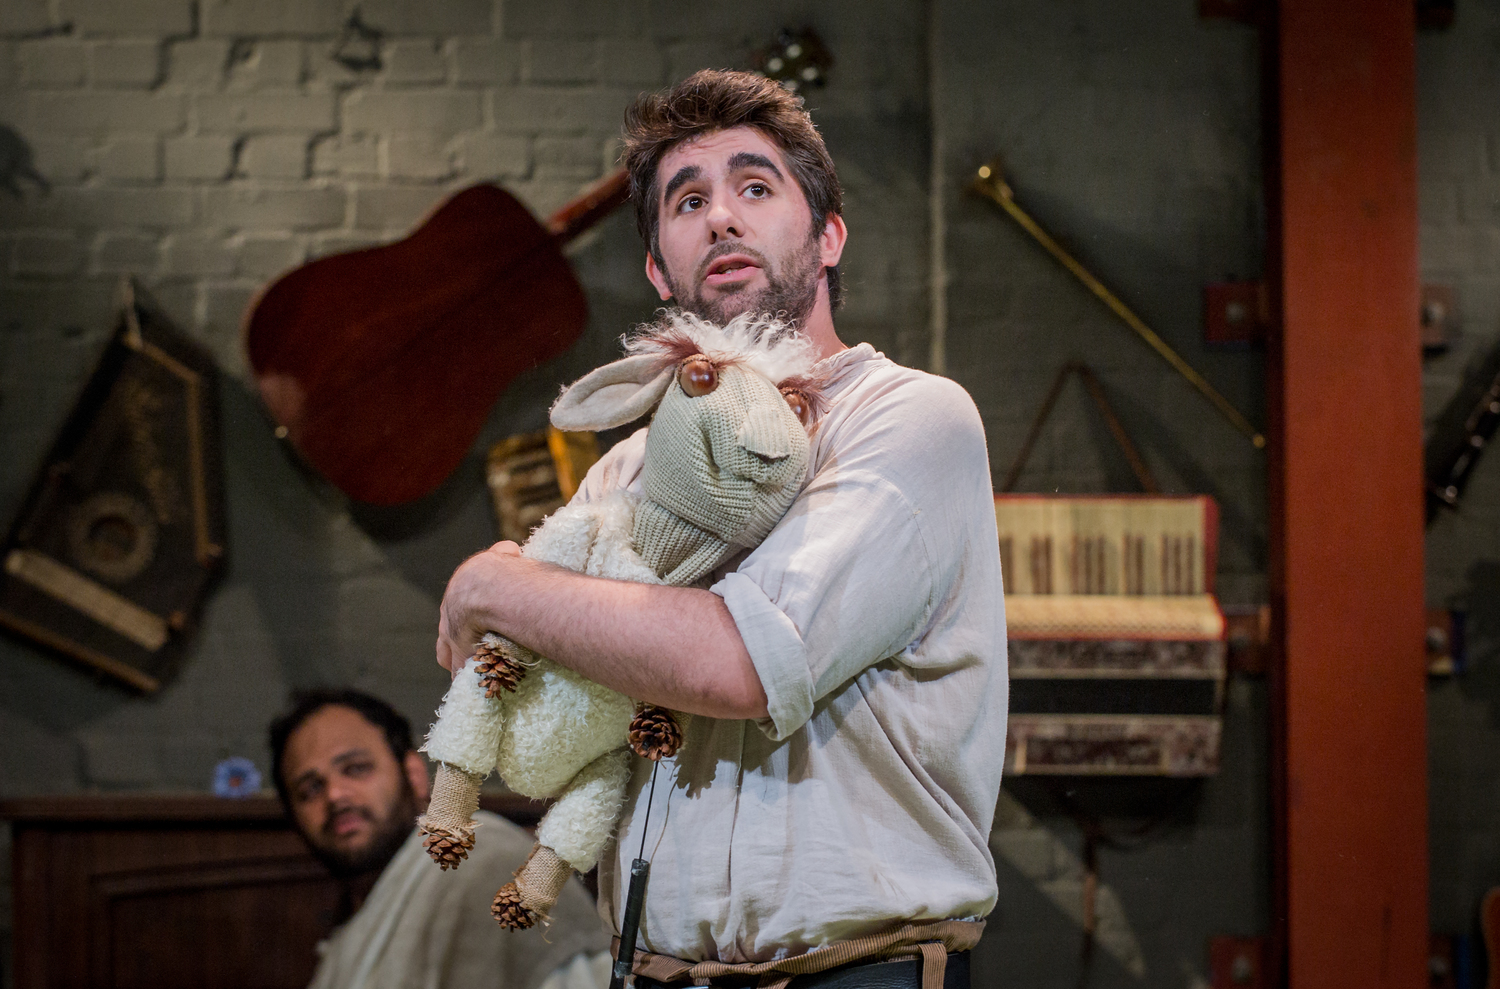 Simon Lipkin in As You Like It, composed by Jude Obermüller (photo by Robert Workman)